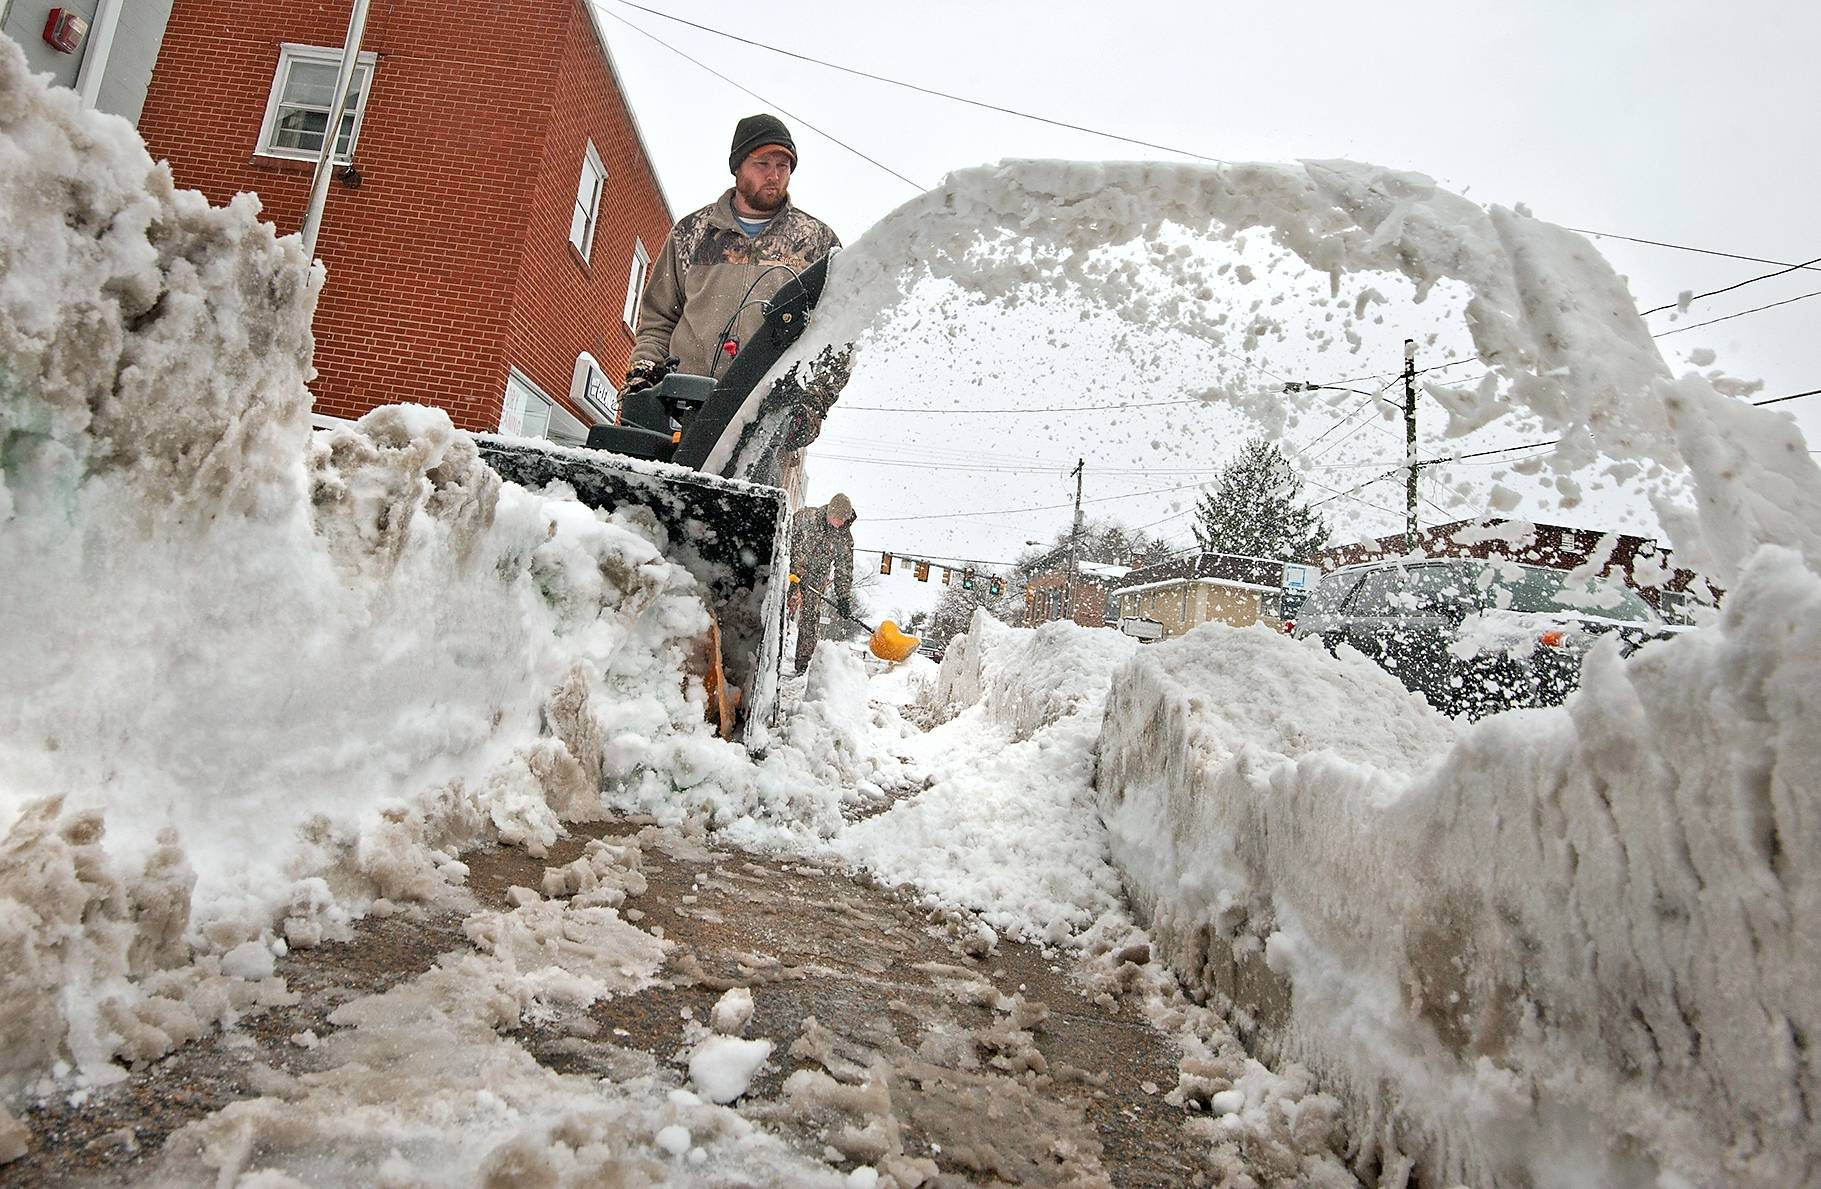 Grant French blows snow while his brother, Ross, follows with a shovel along Main Street in Bridgewater, Va., Thursday, Feb. 13, 2014.